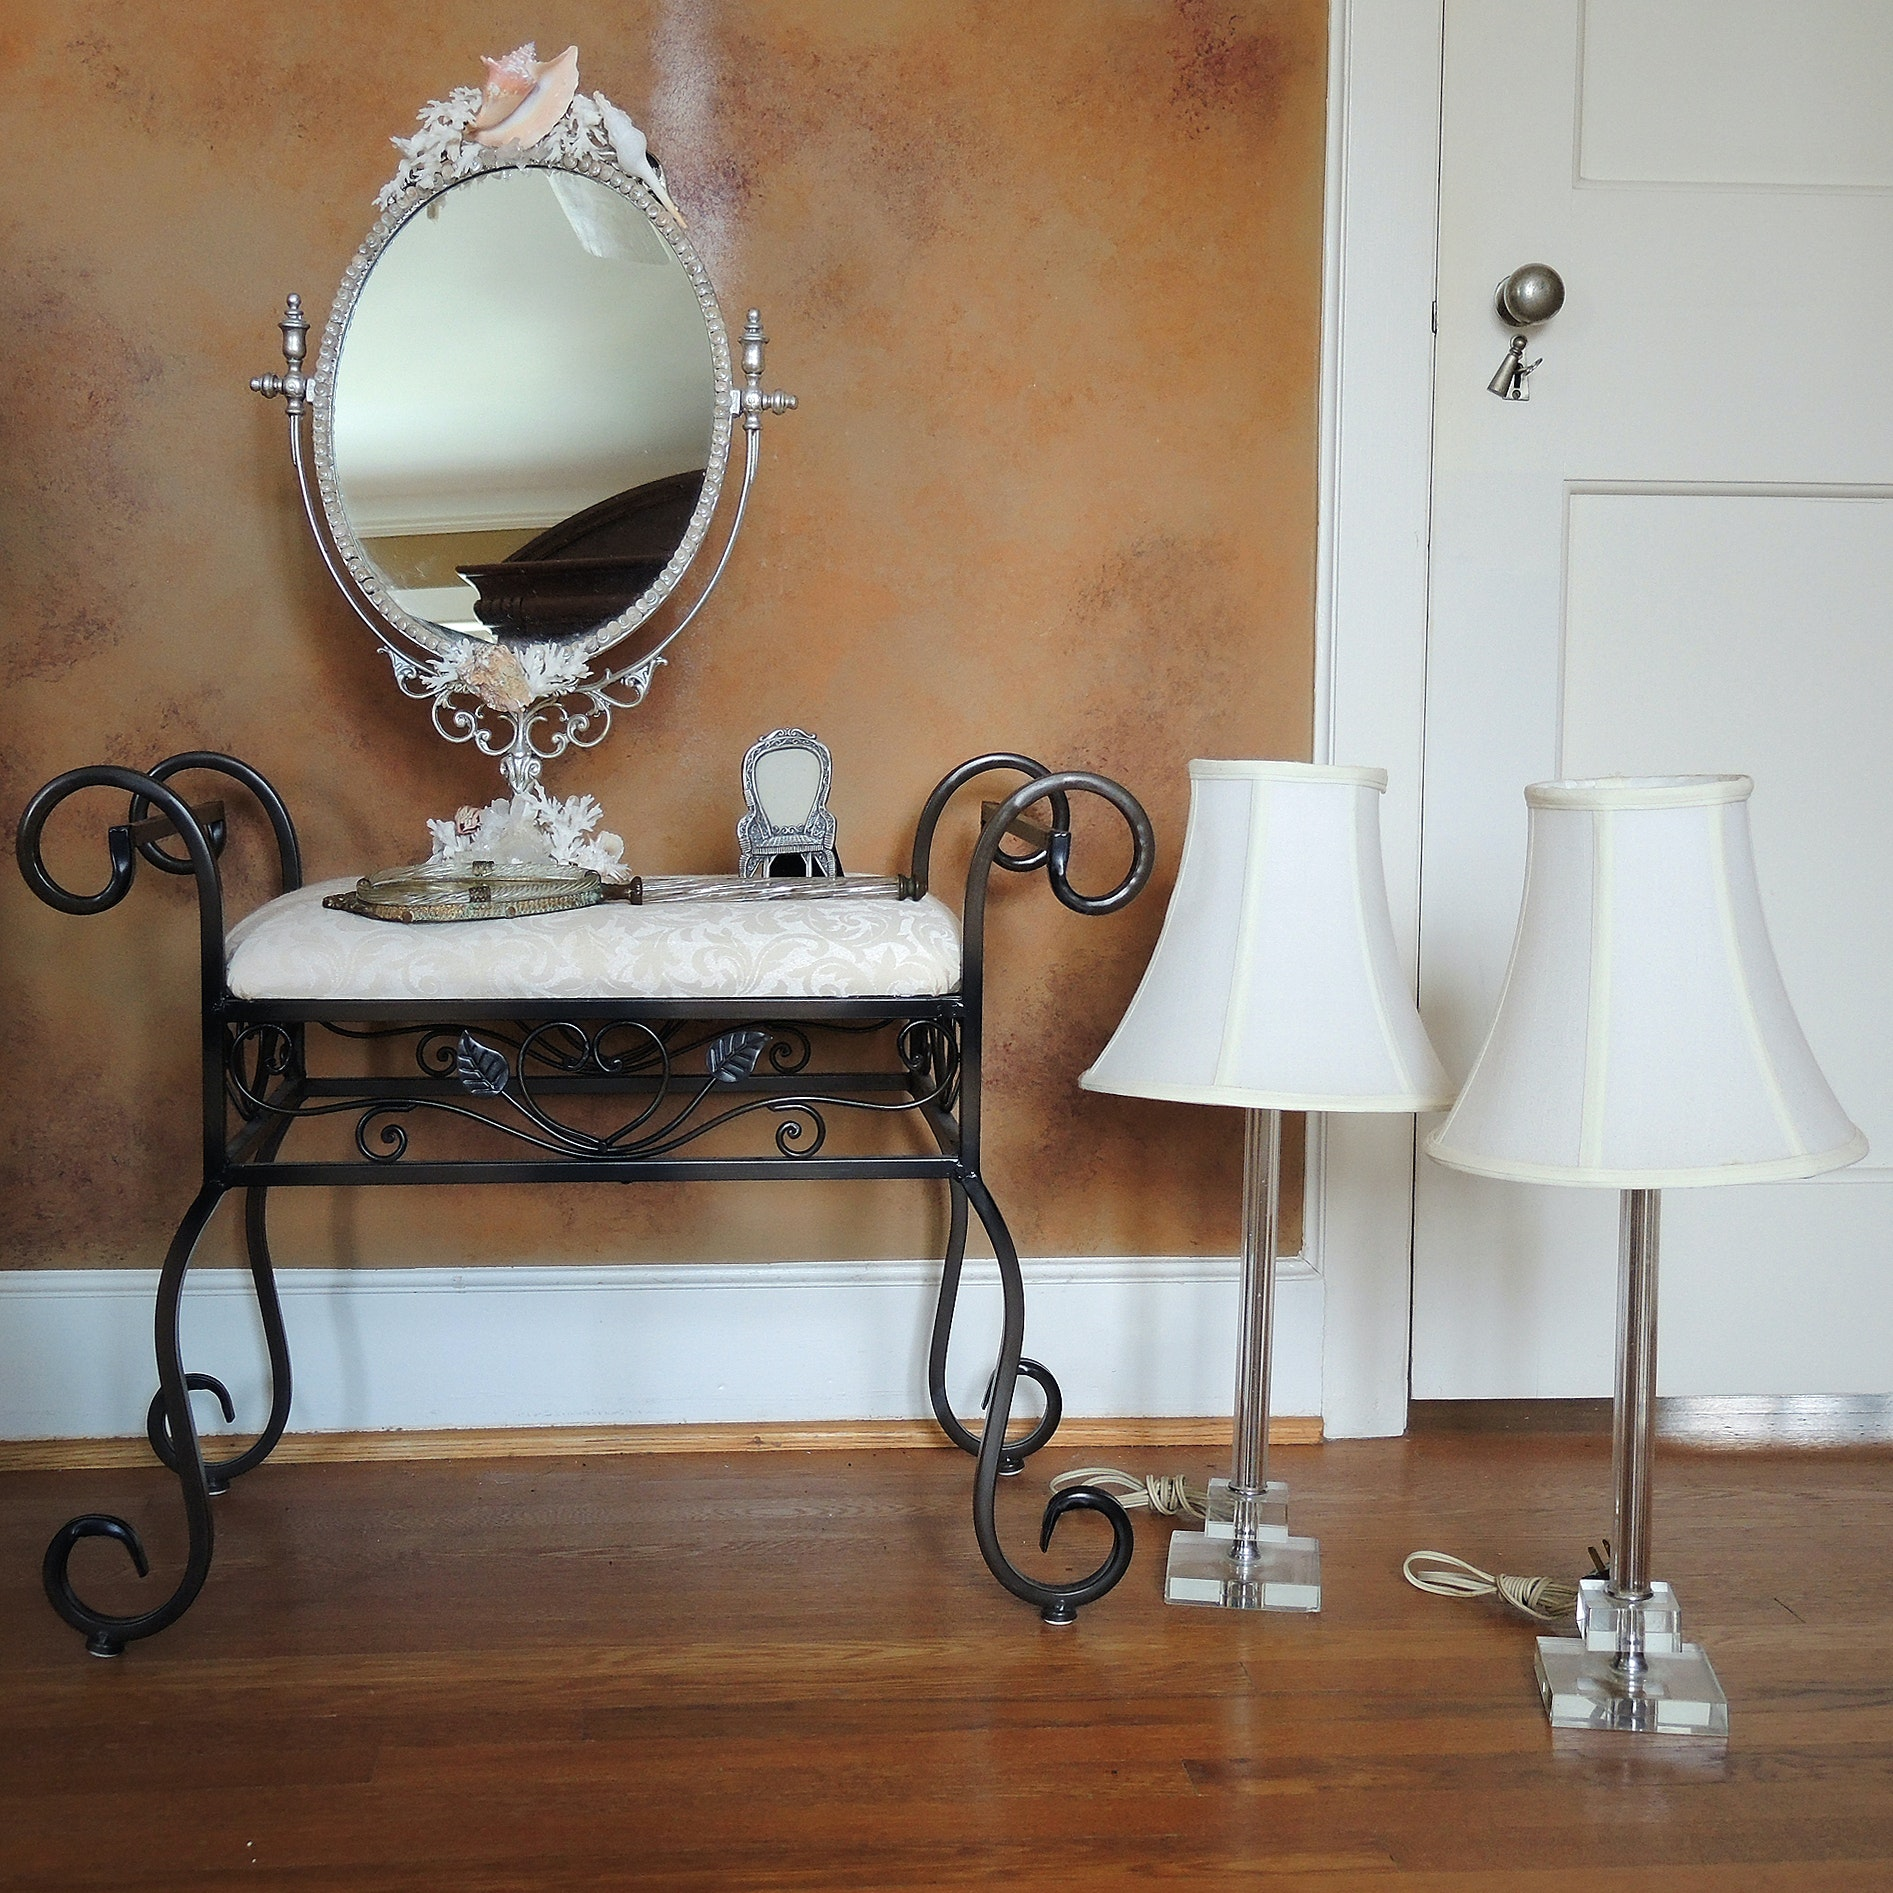 Vanity Bench, Vintage Lamps and Accessories